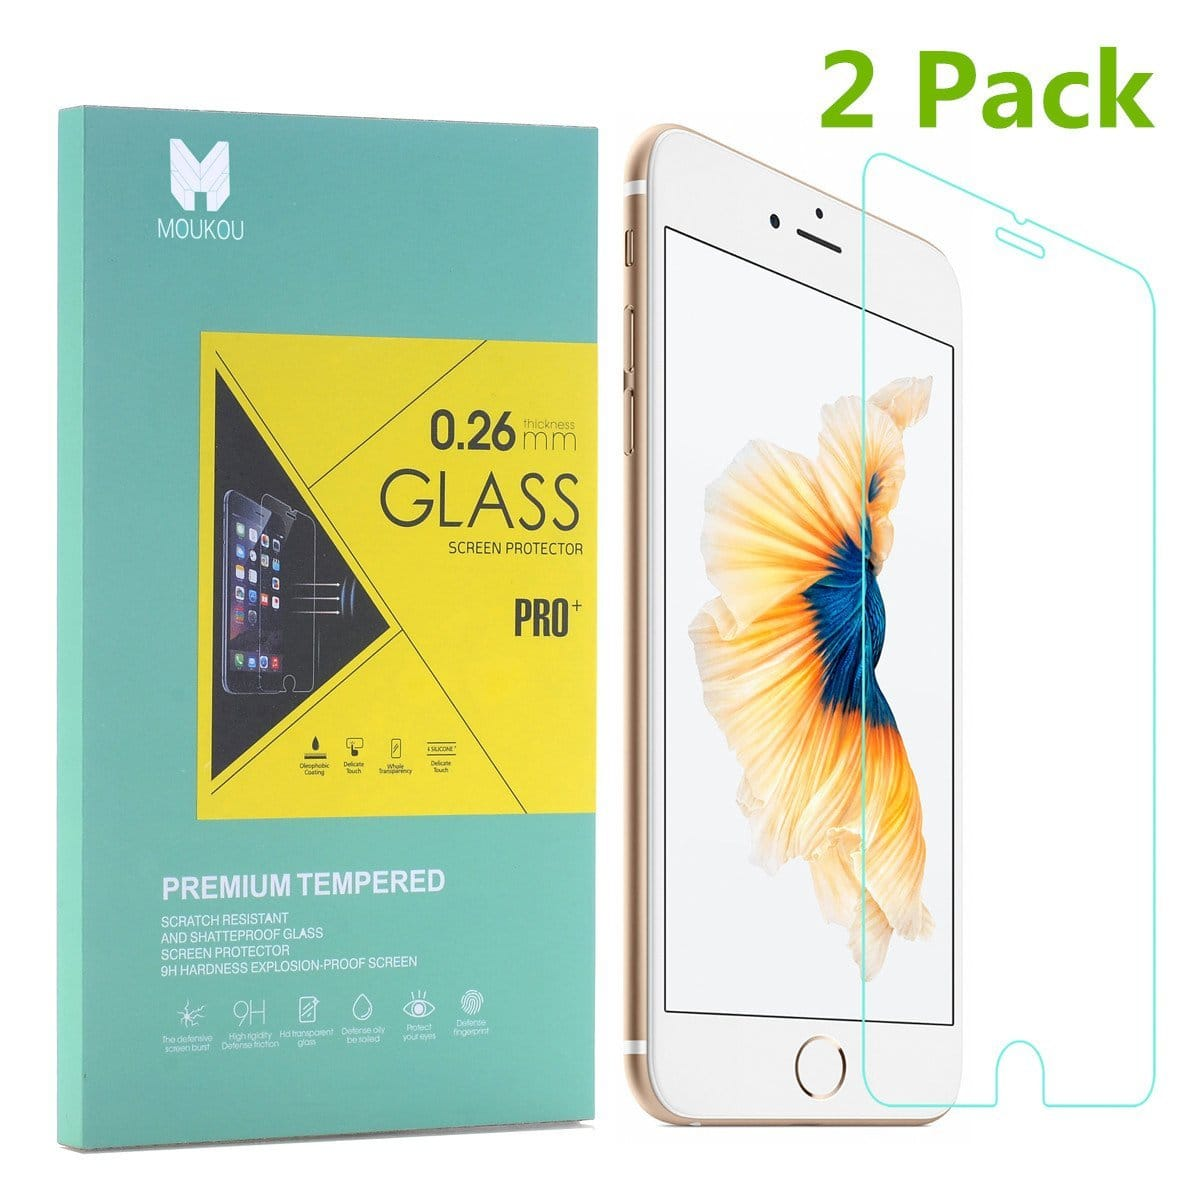 2-Pack MouKou Apple iPhone 6 Plus Tempered Glass Screen Protector  $1.90